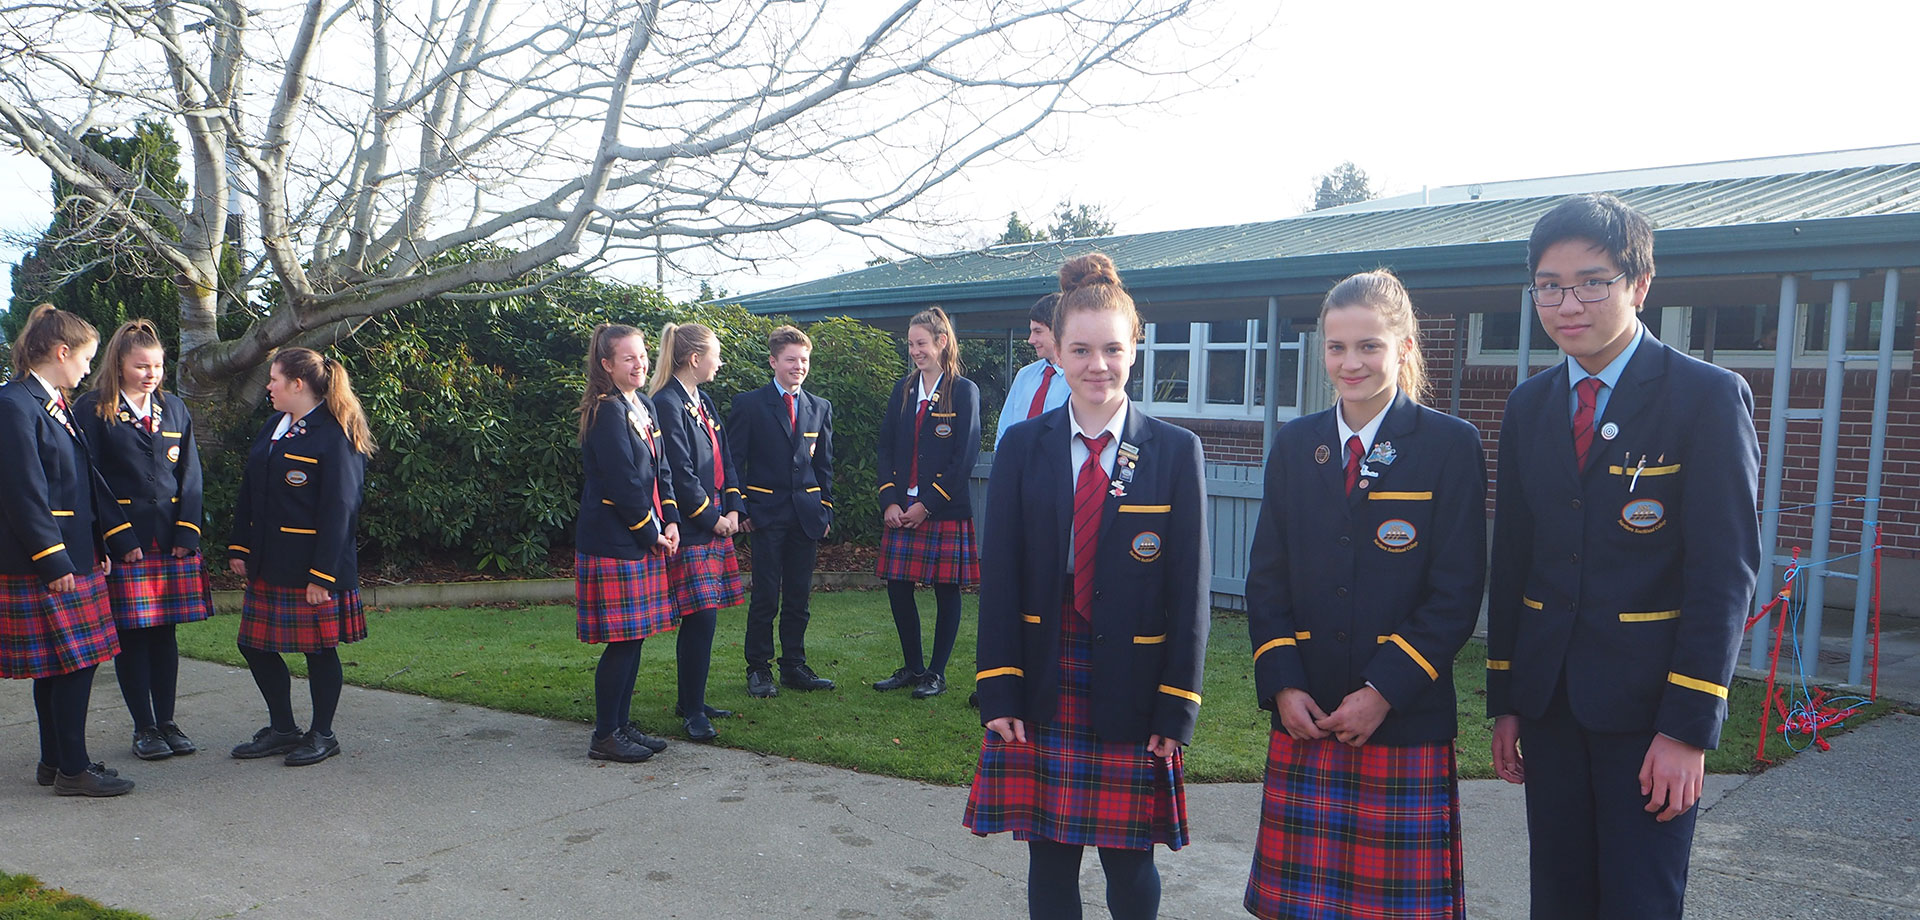 Meet some of the students on our school grounds